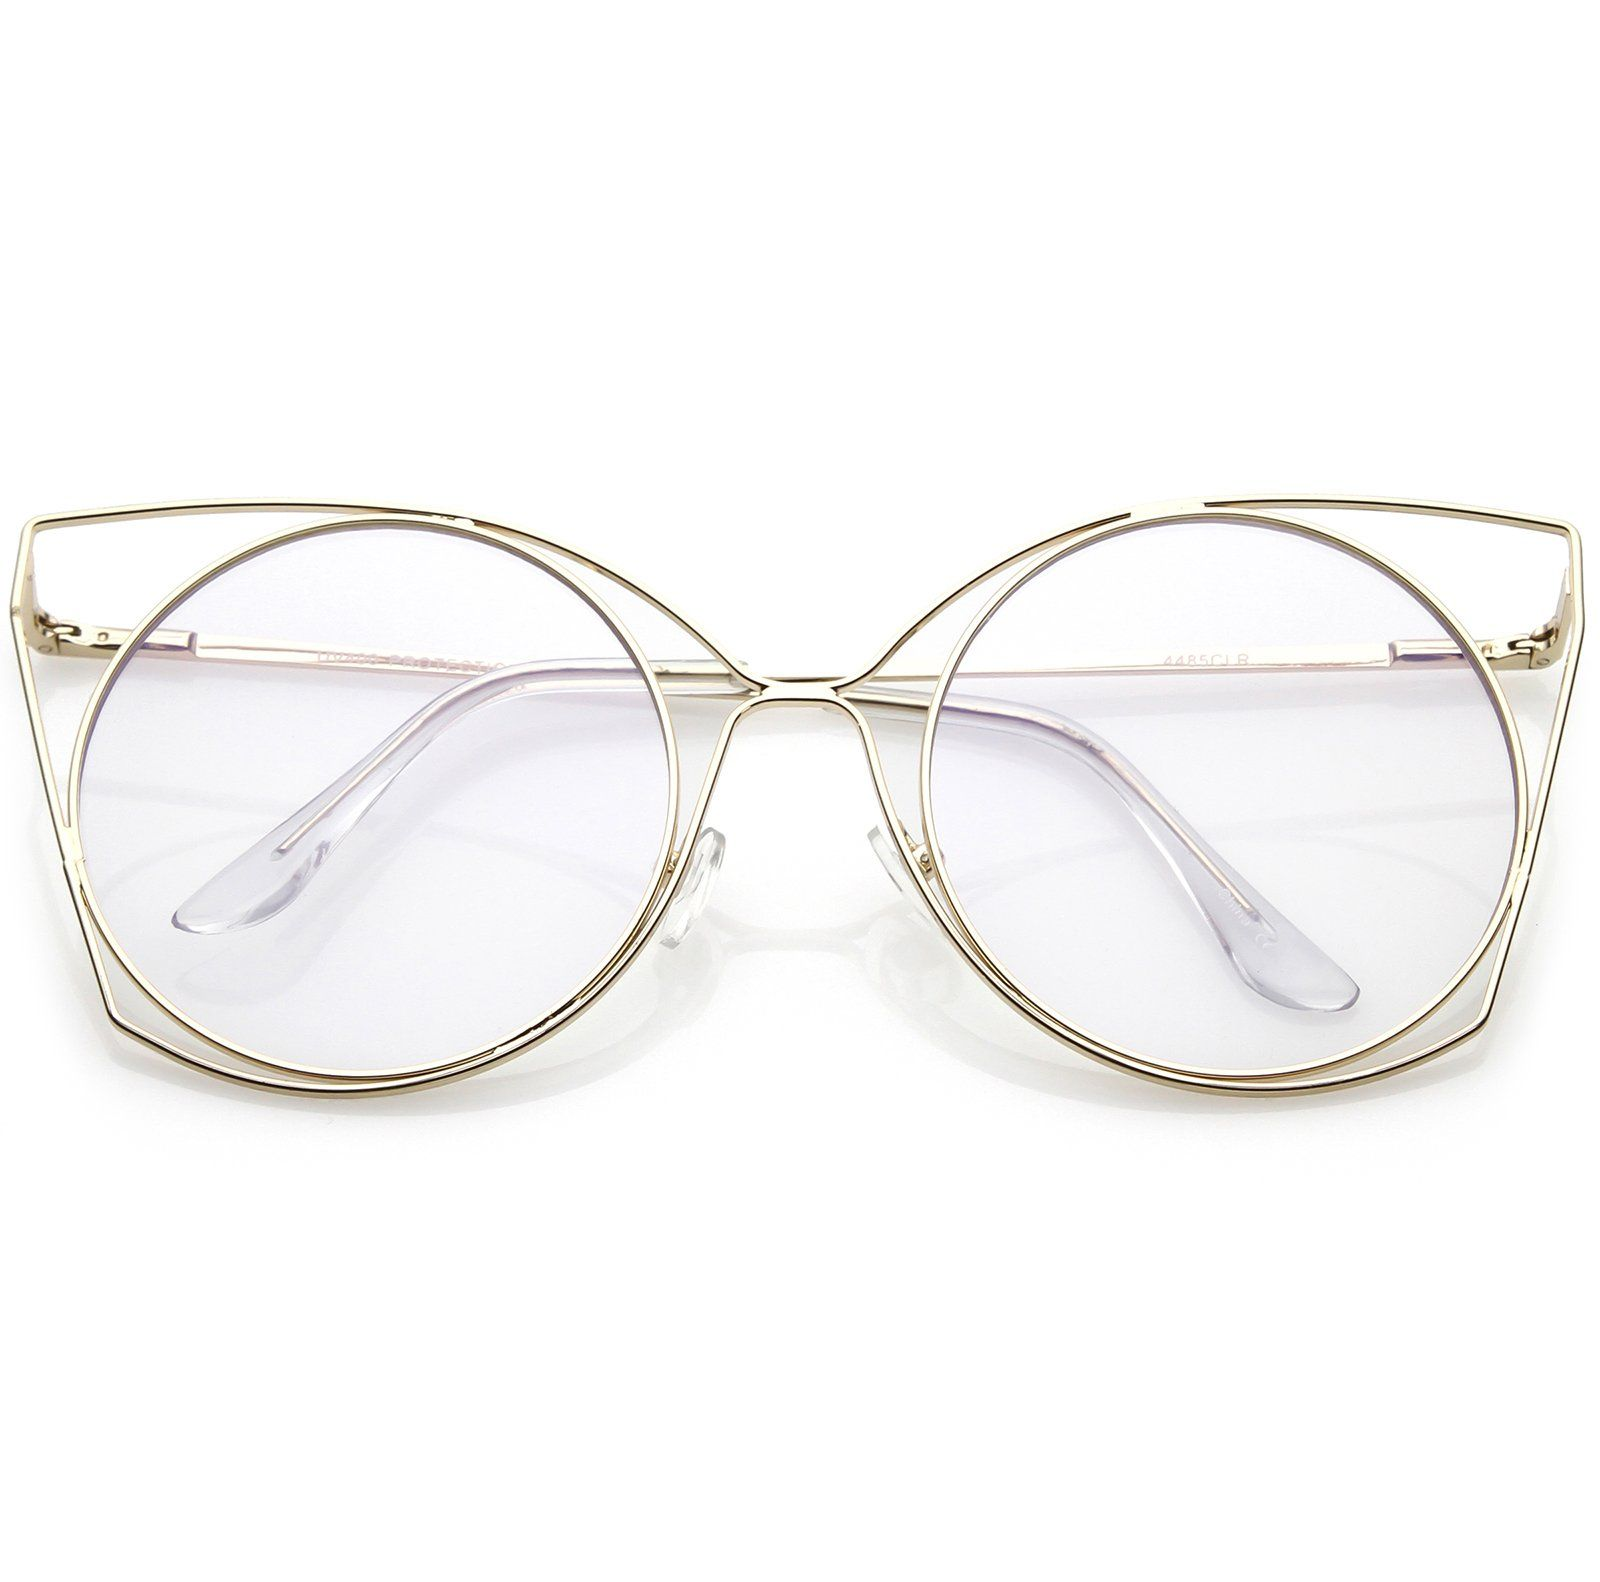 6b69e15b06c Oversize Slim Metal Cutout Cat Eye Glasses With Clear Flat Round Lens 58mm   frame  clear  cateye  summer  womens  bold  oversized  sunglasses  purple    ...